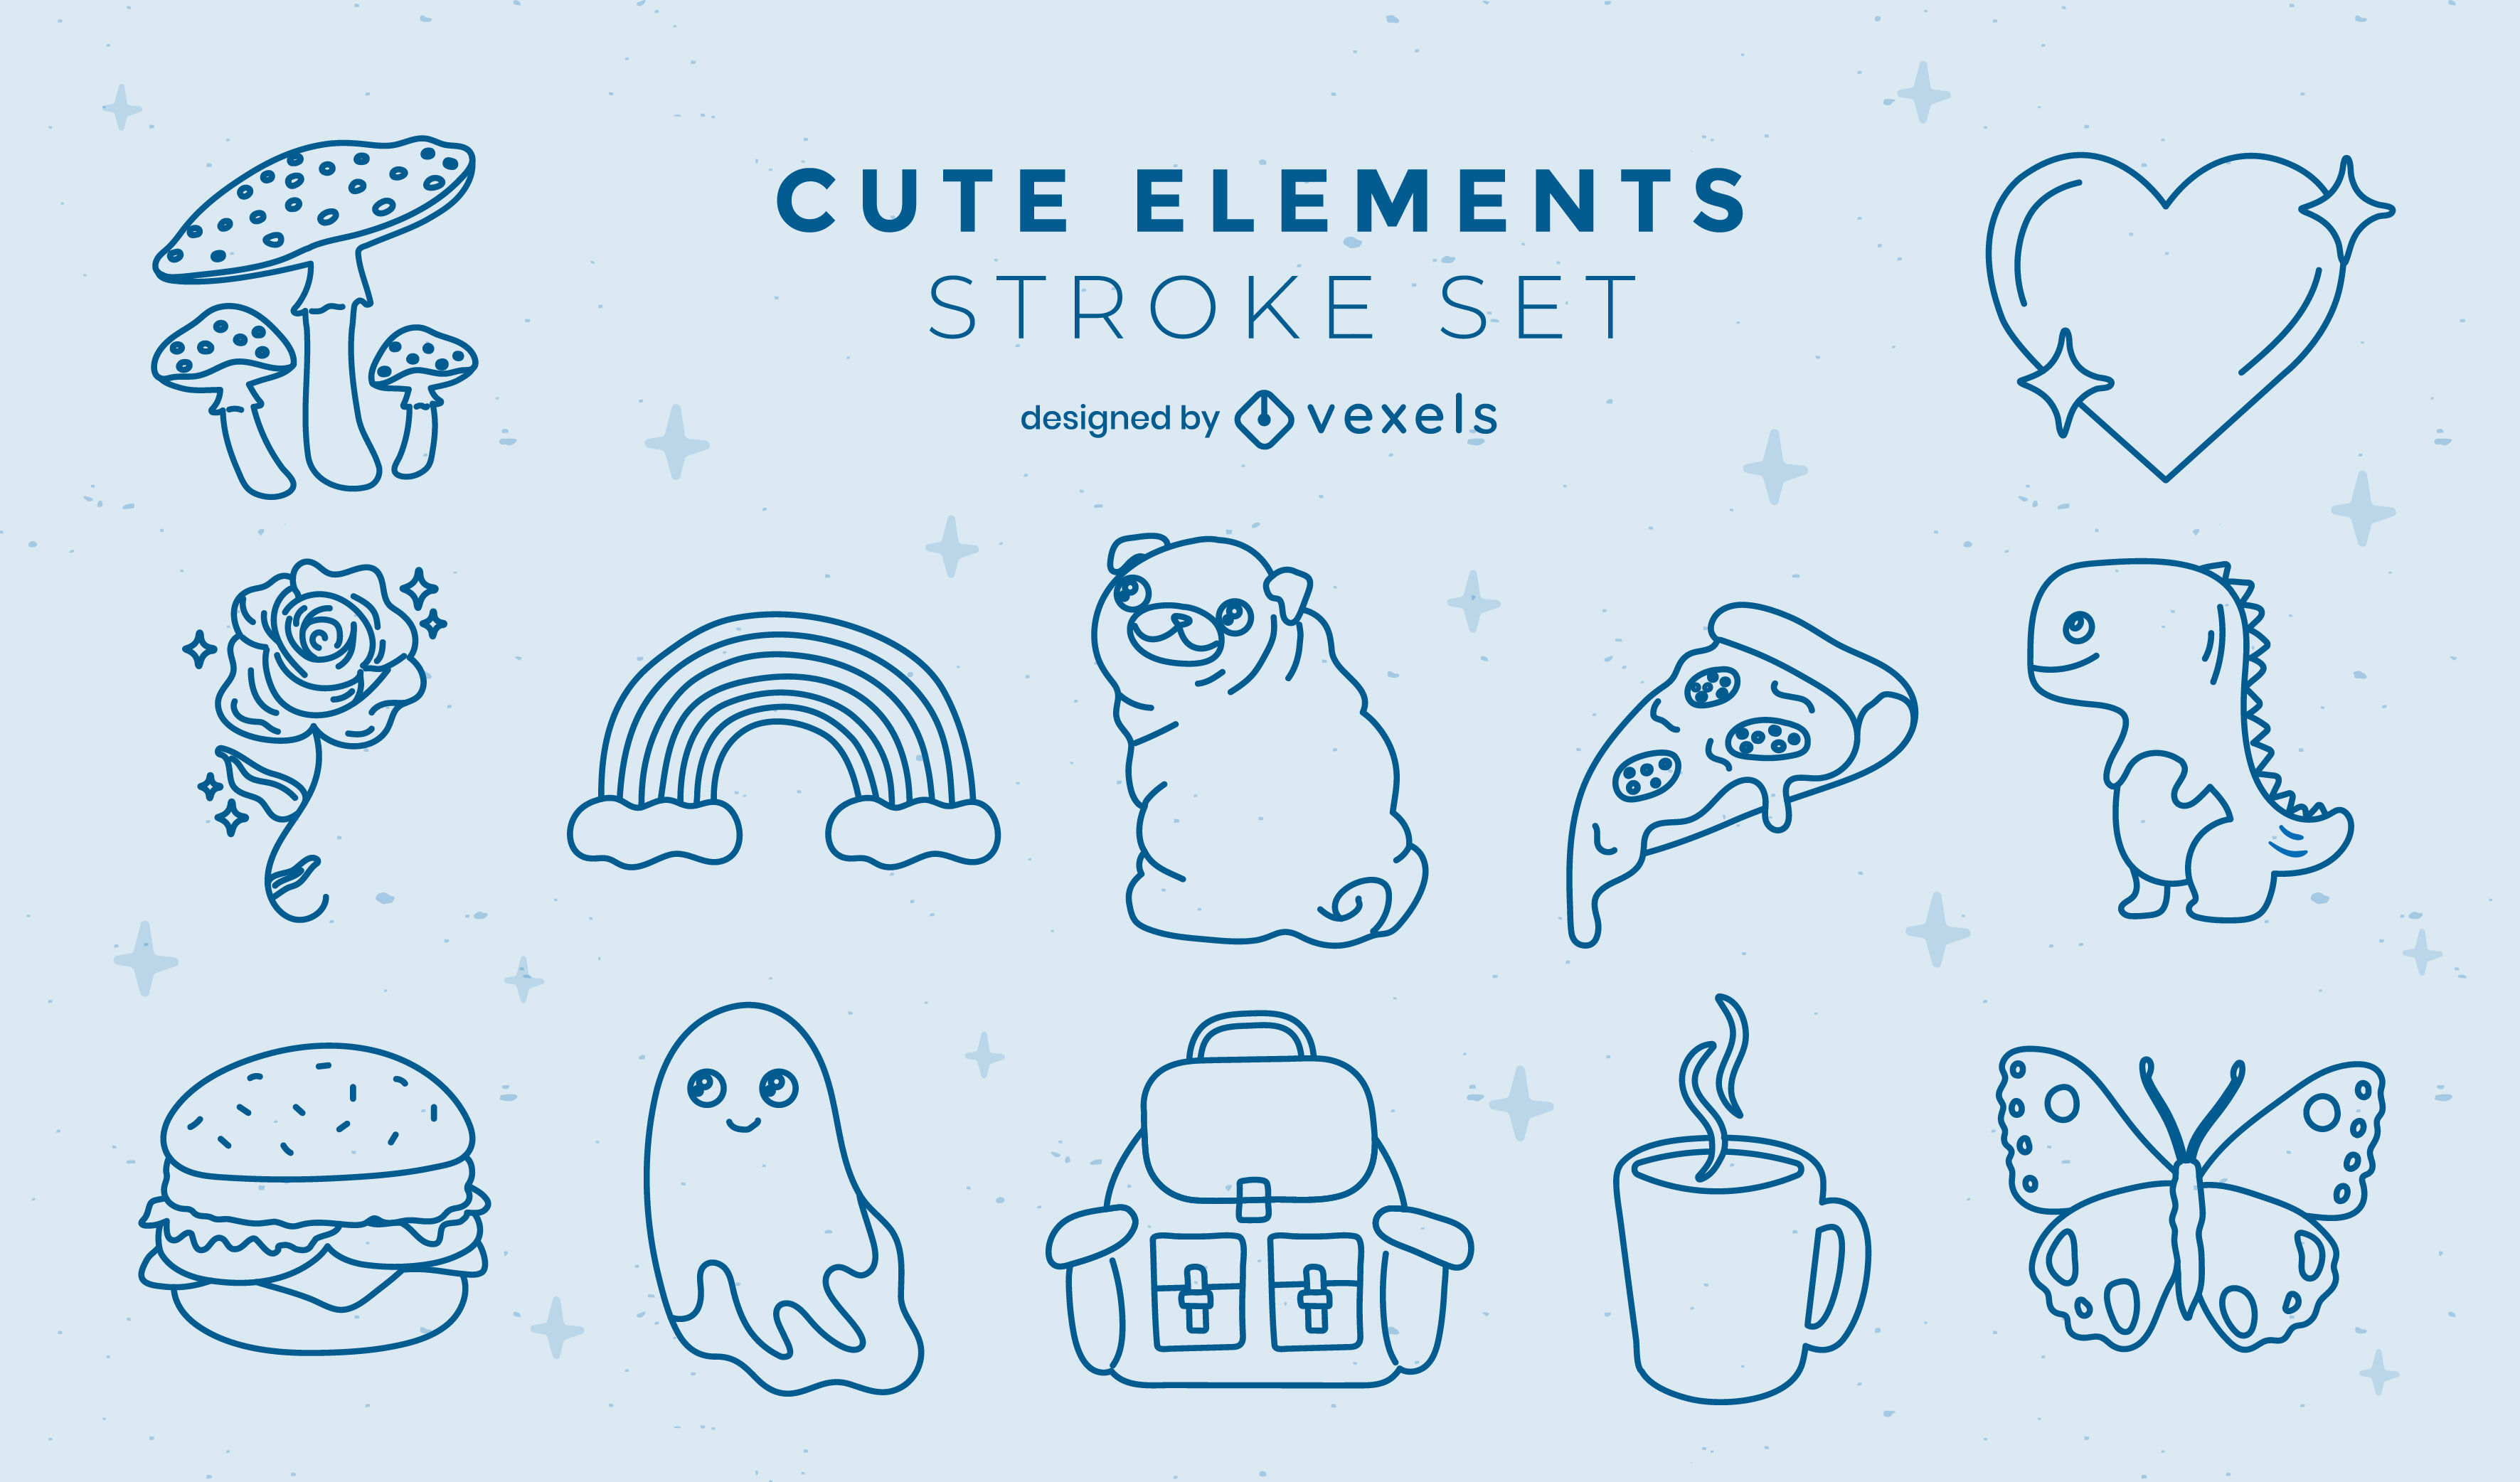 Cute asssorted elements stroke collection